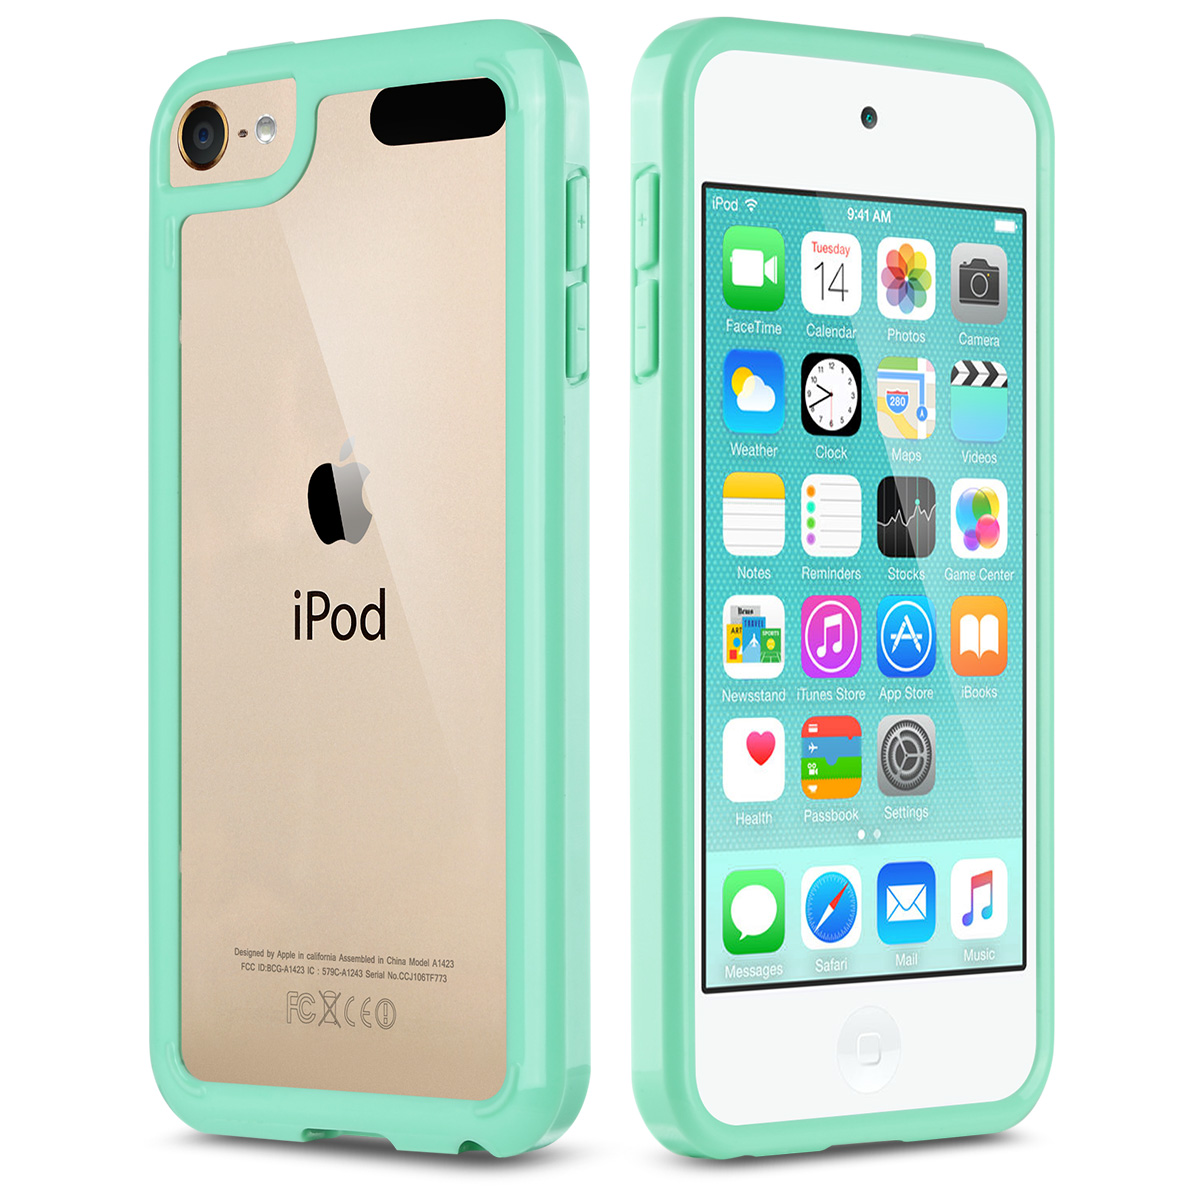 iPod Touch 6th Generation Case,iPod 5 Case, ULAK Clear Hybrid Flexible Soft TPU Case Shock Absorbing Hard Plastic Cover for iPod Touch 6/iPod Touch 5